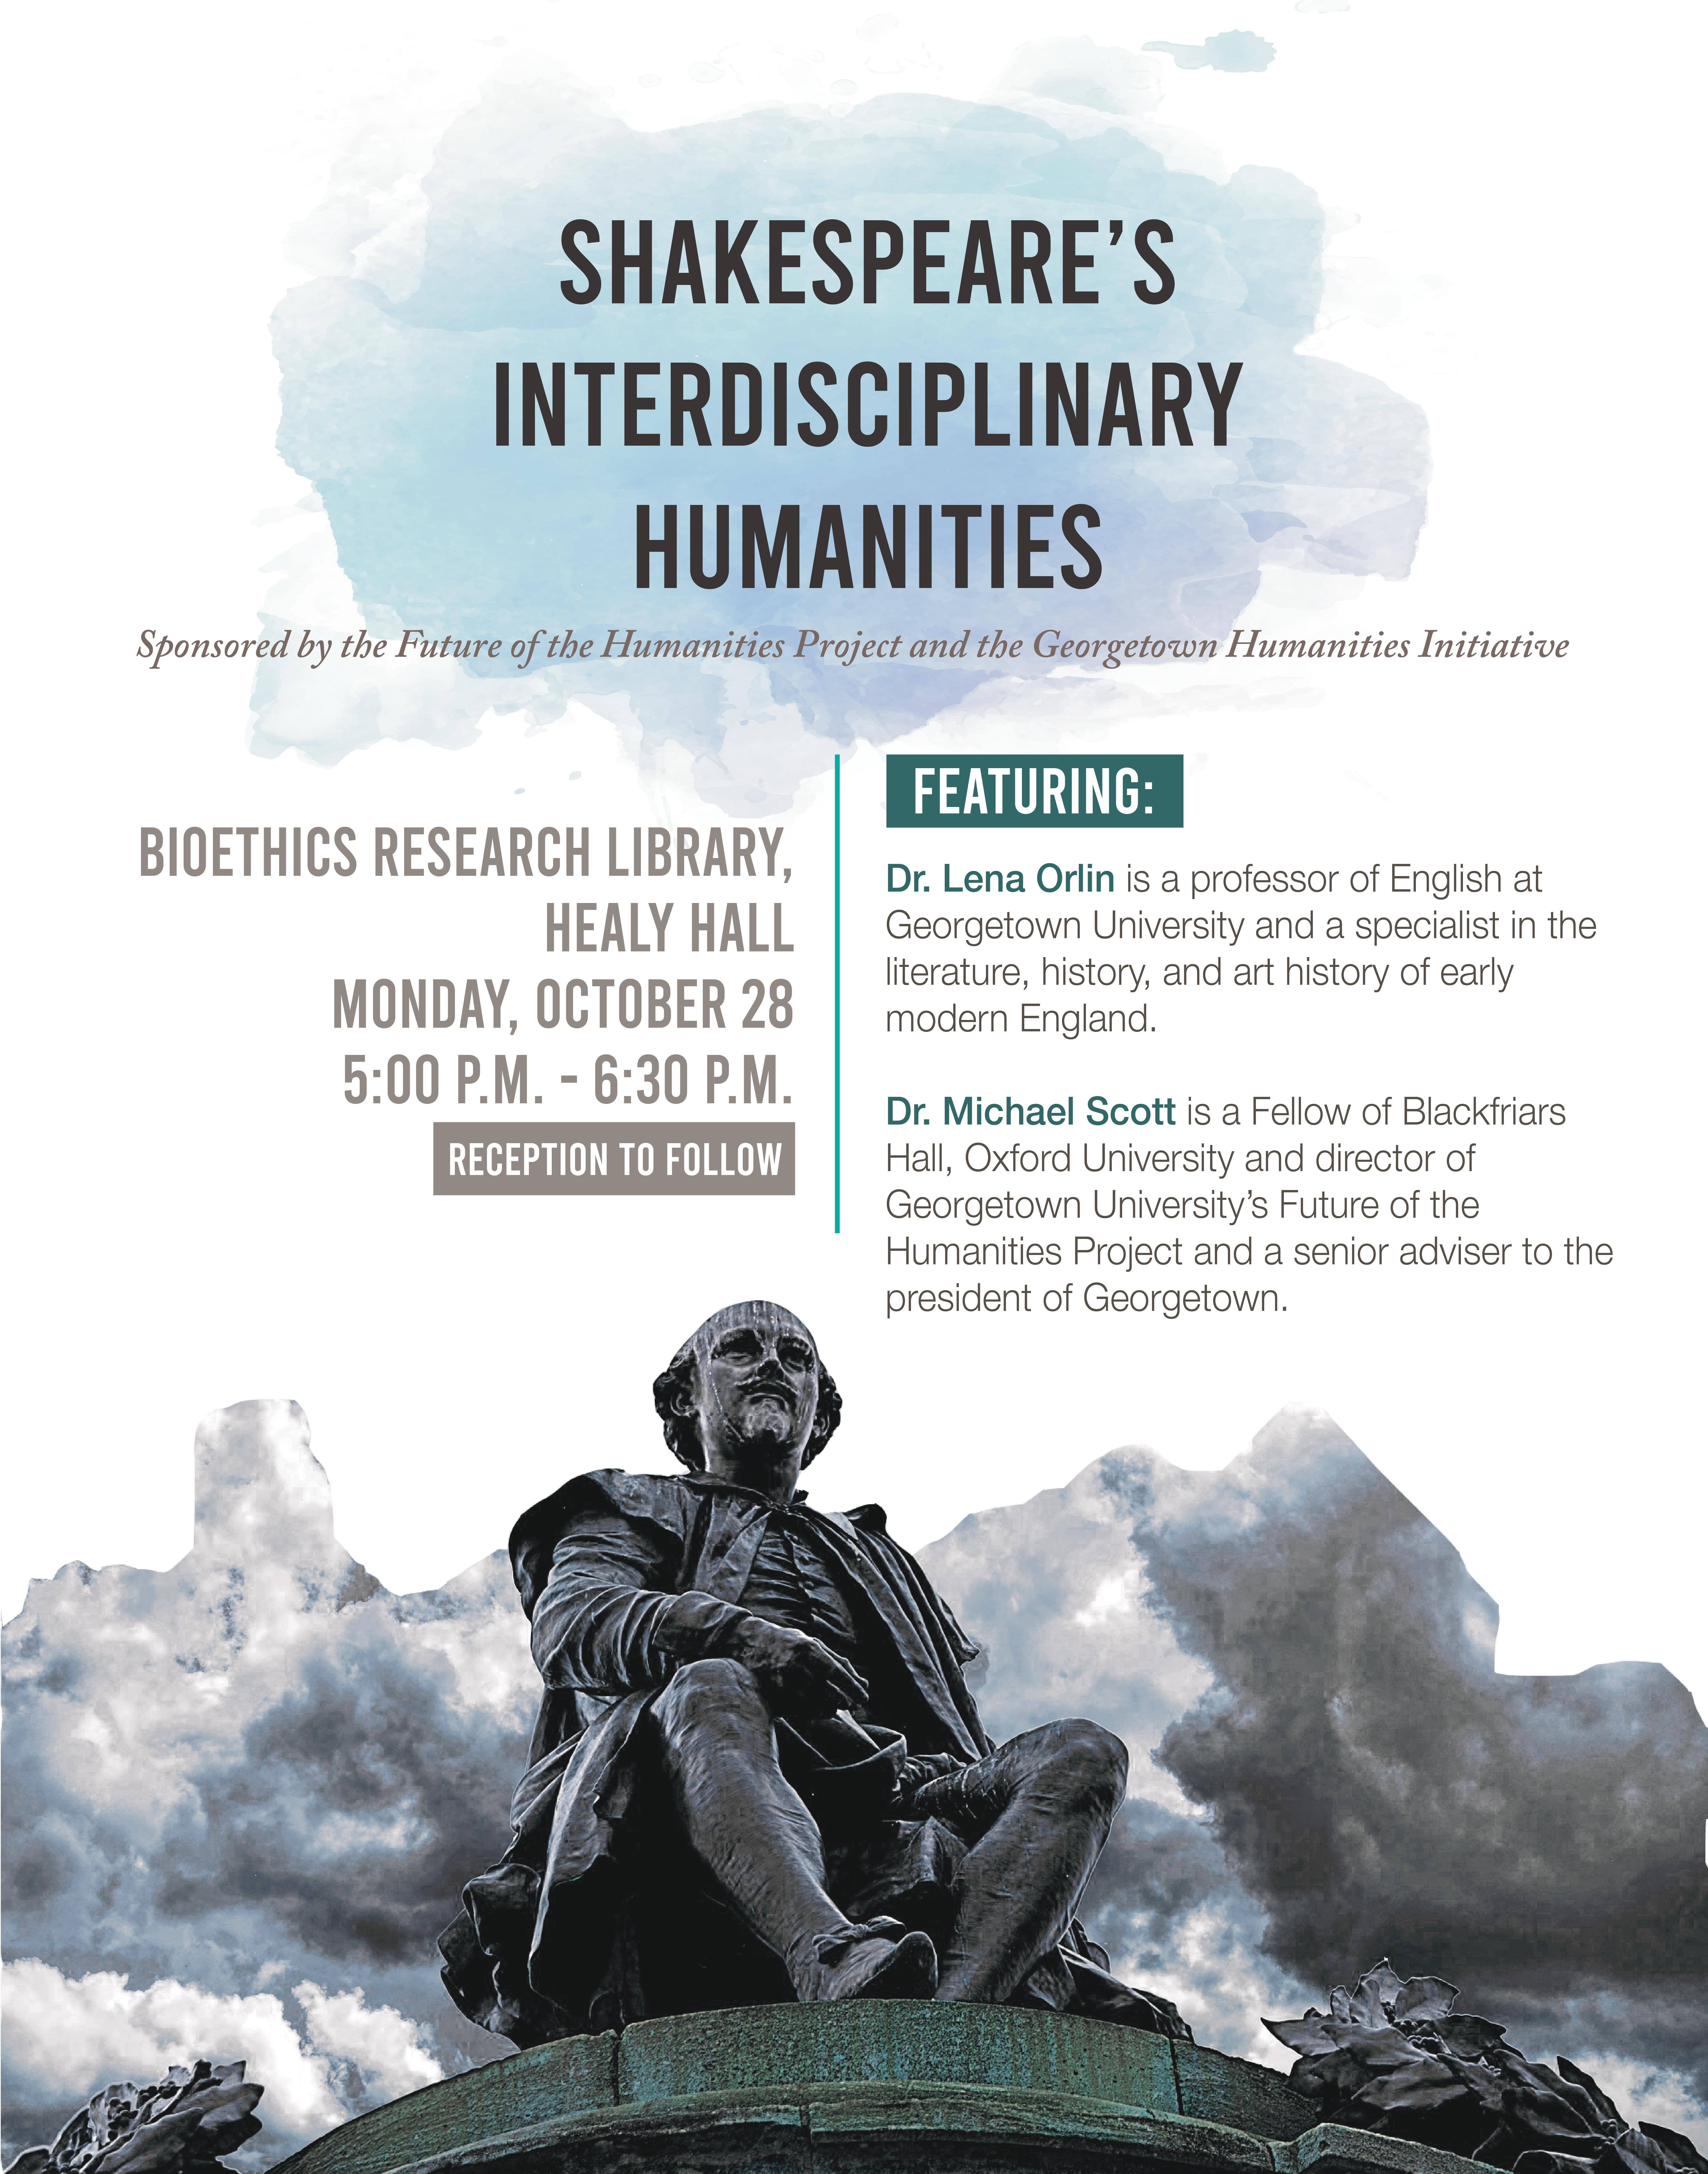 Event at the Bioethics research Library in  Healy Hall, on October 28, 5 to 6:30pm.